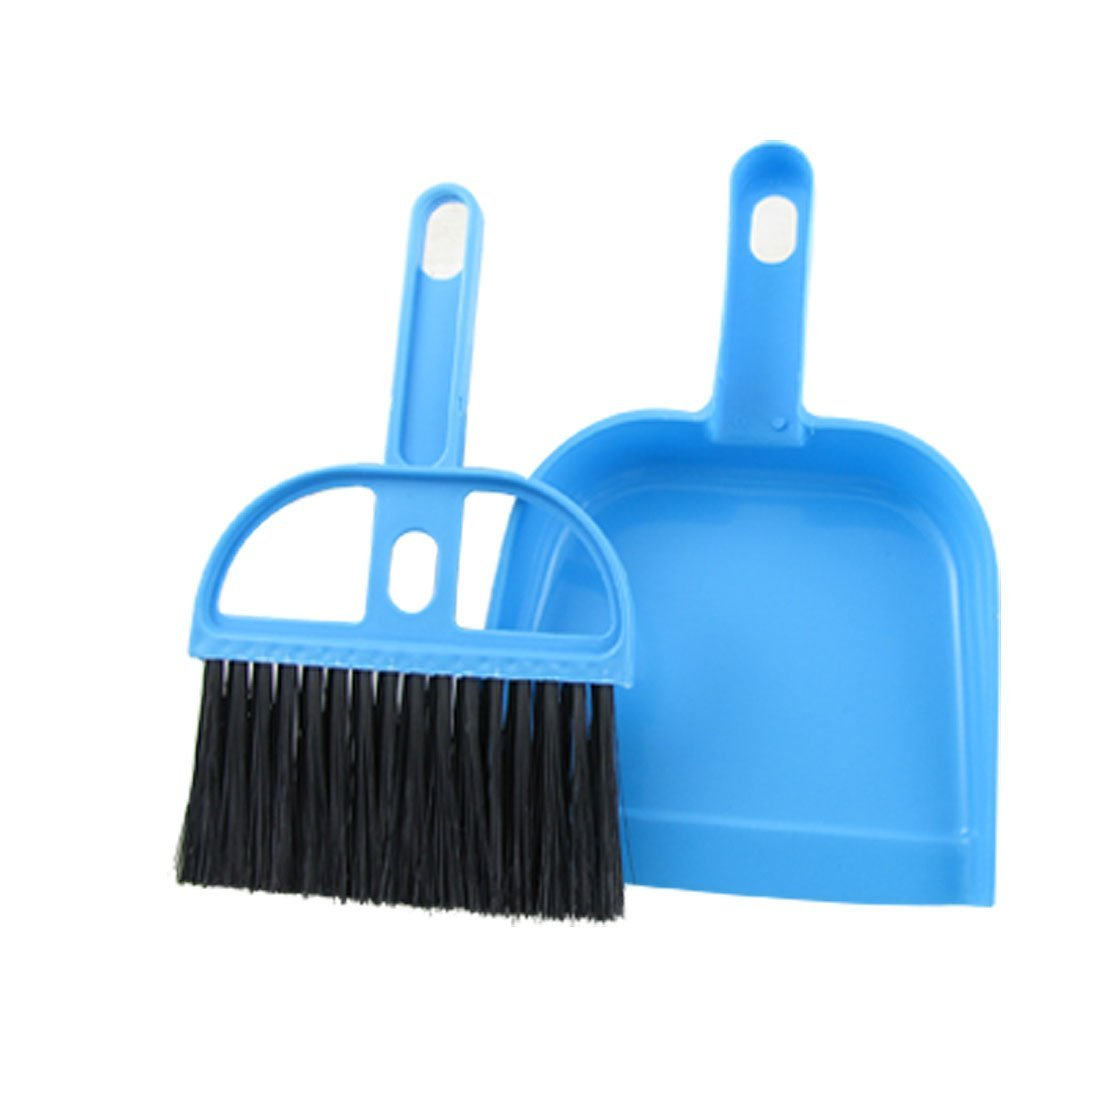 Dust brush and Dust pan Small set Broom and dust pan set Hand brush Pack of 2 Hand Broom Broom and dustpan small set